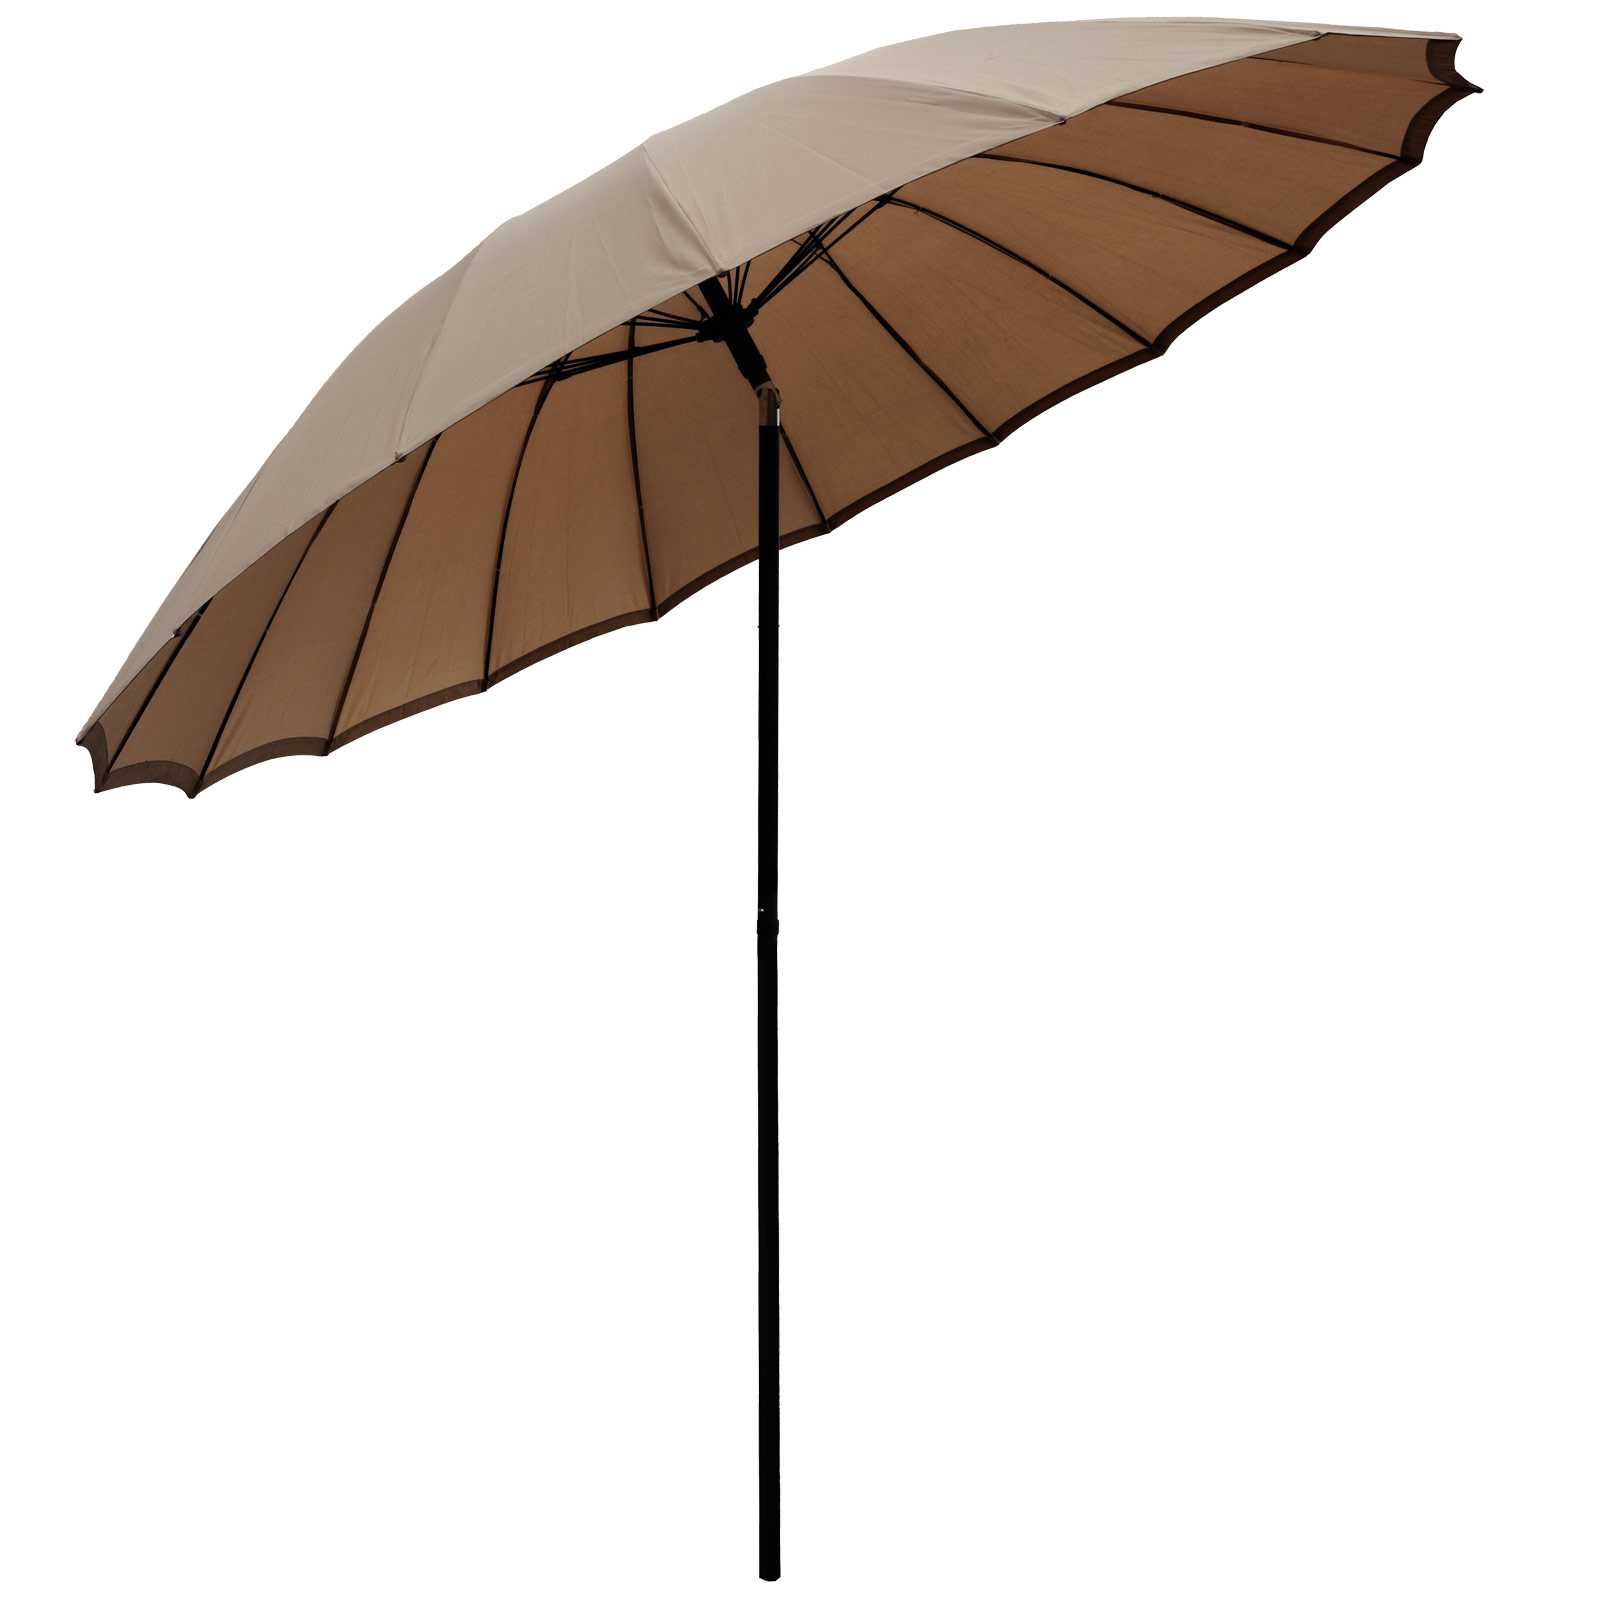 Parasol Shanghai New 2 5m Tilting Shanghai Parasol Umbrella Sun Shade For